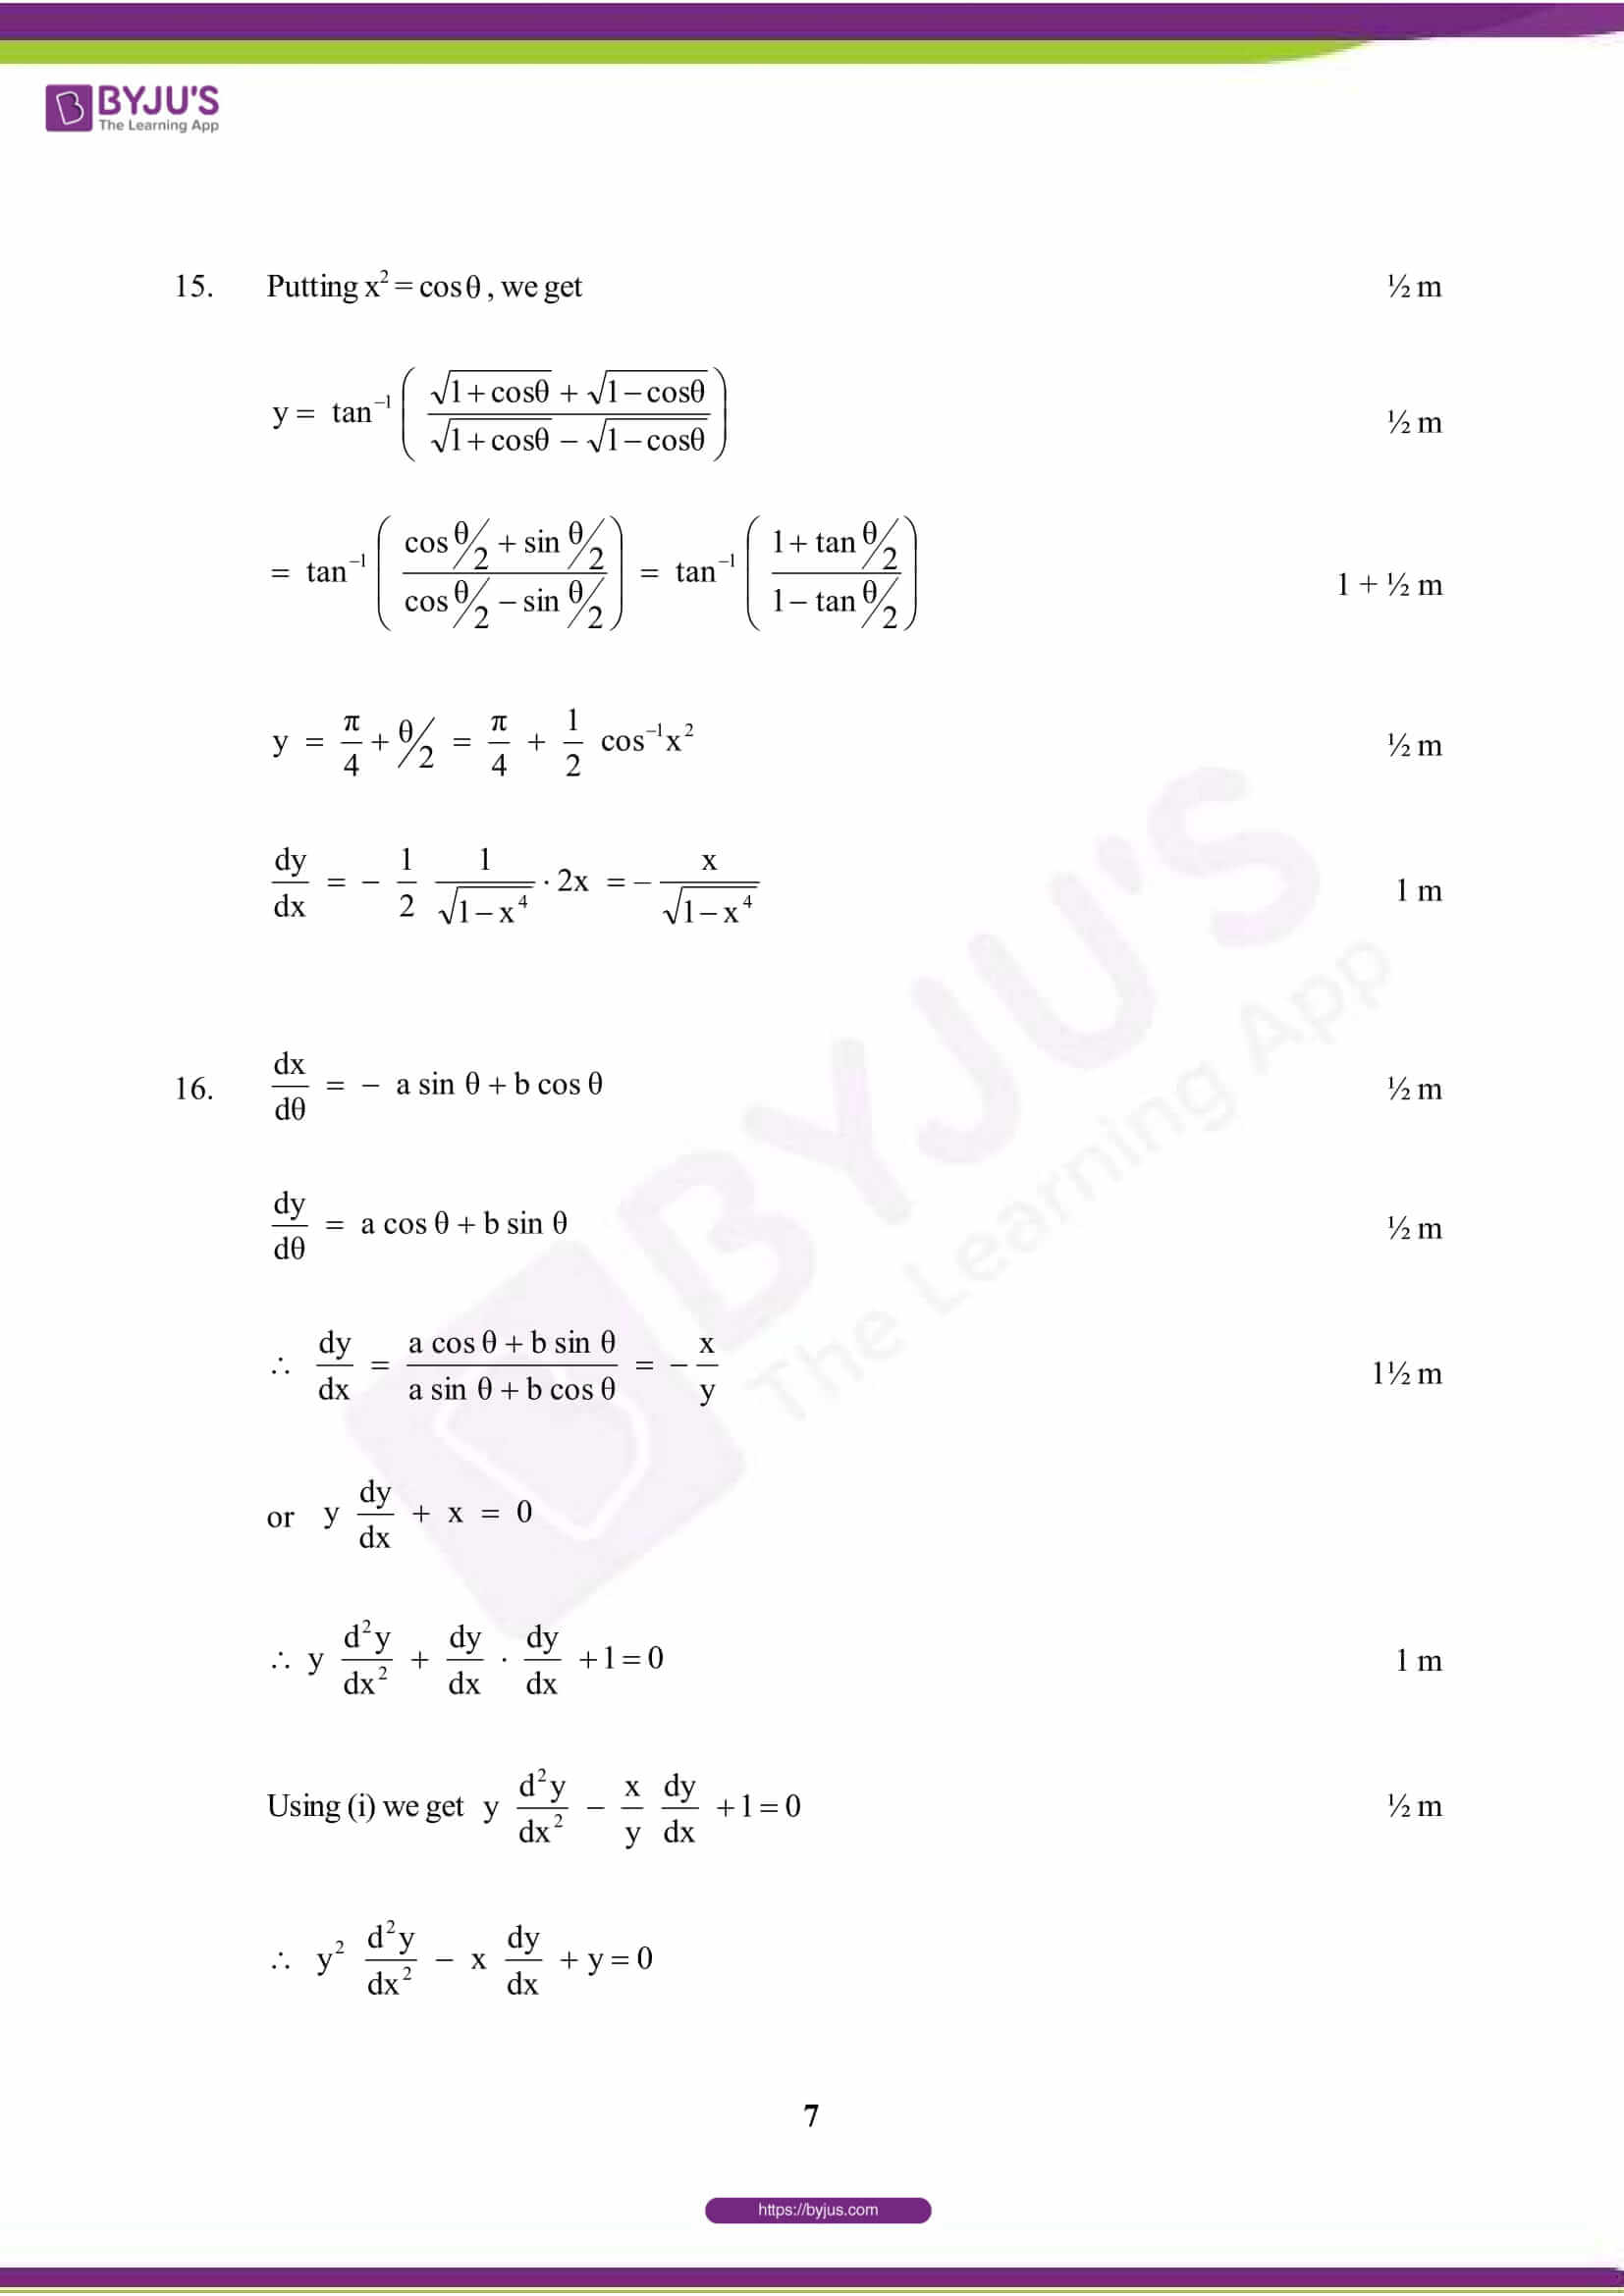 cbse class 12 maths 2015 solution set 1